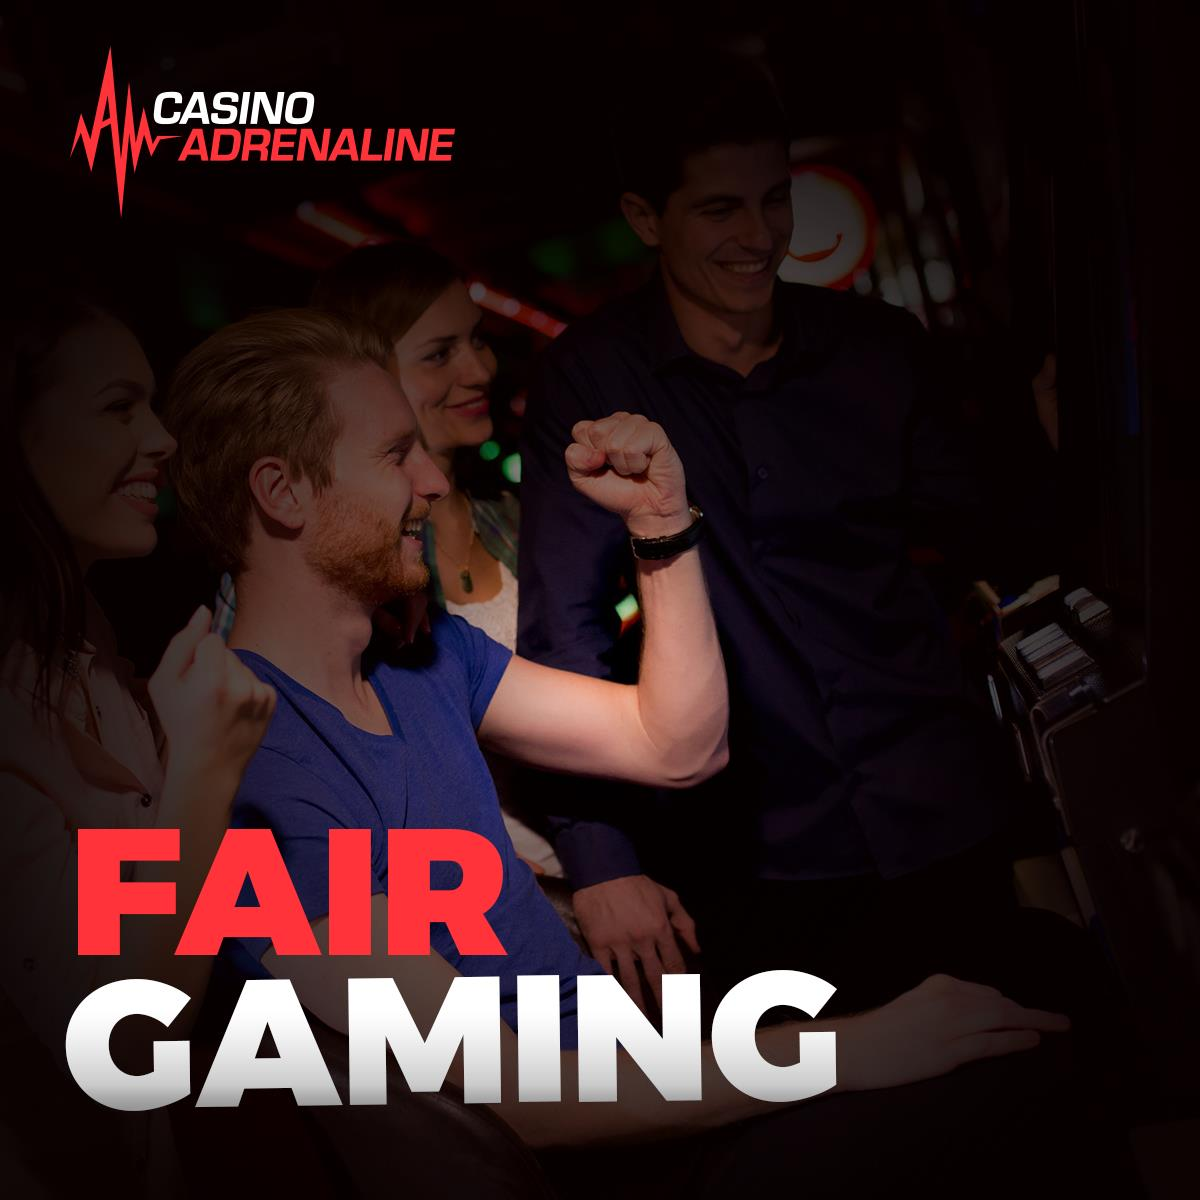 test Twitter Media - #CasinoAdrenaline is absolutely committed to fair play. #Trustworthiness is the keystone for running our casino and building our visitor base – who keep coming back for more! To ensure #fairgaming environment, we use a random number generator for complete fairness and randomness. https://t.co/cIrkPLqFeT